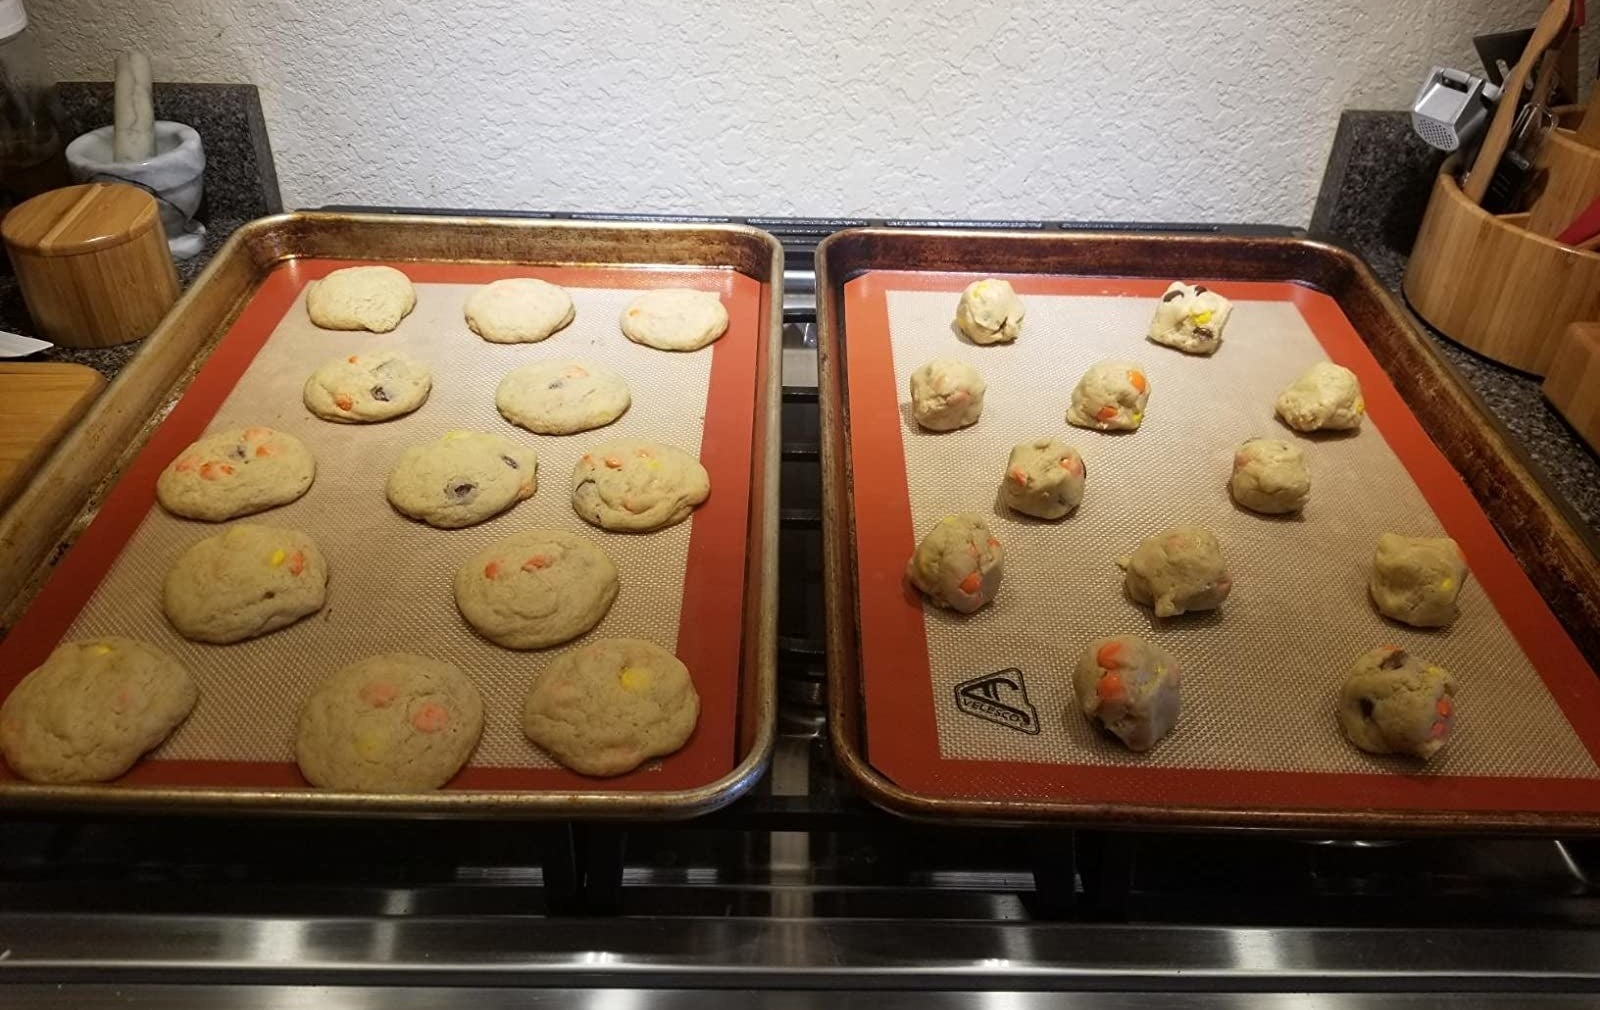 A reviewer photo of two baking sheets lined with the silicone mats and topped with baked cookies on one and balls of uncooked cookie dough on the other